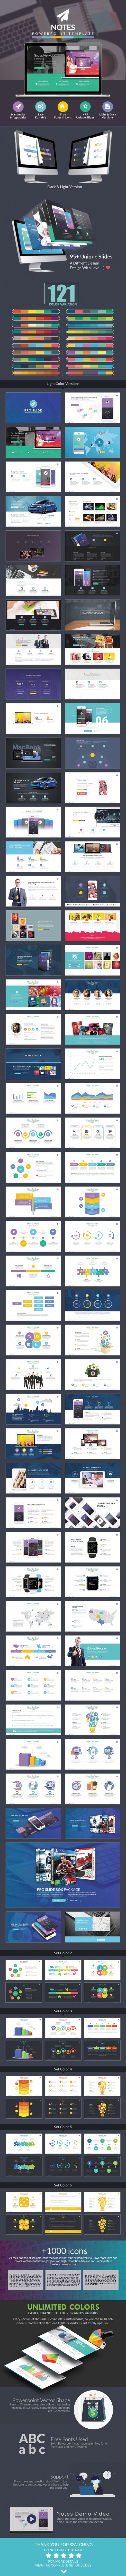 Notes - Business & Webinar Powerpoint Template. Download here: http://graphicriver.net/item/notes-business-webinar-powerpoint-template/14861388?ref=ksioks